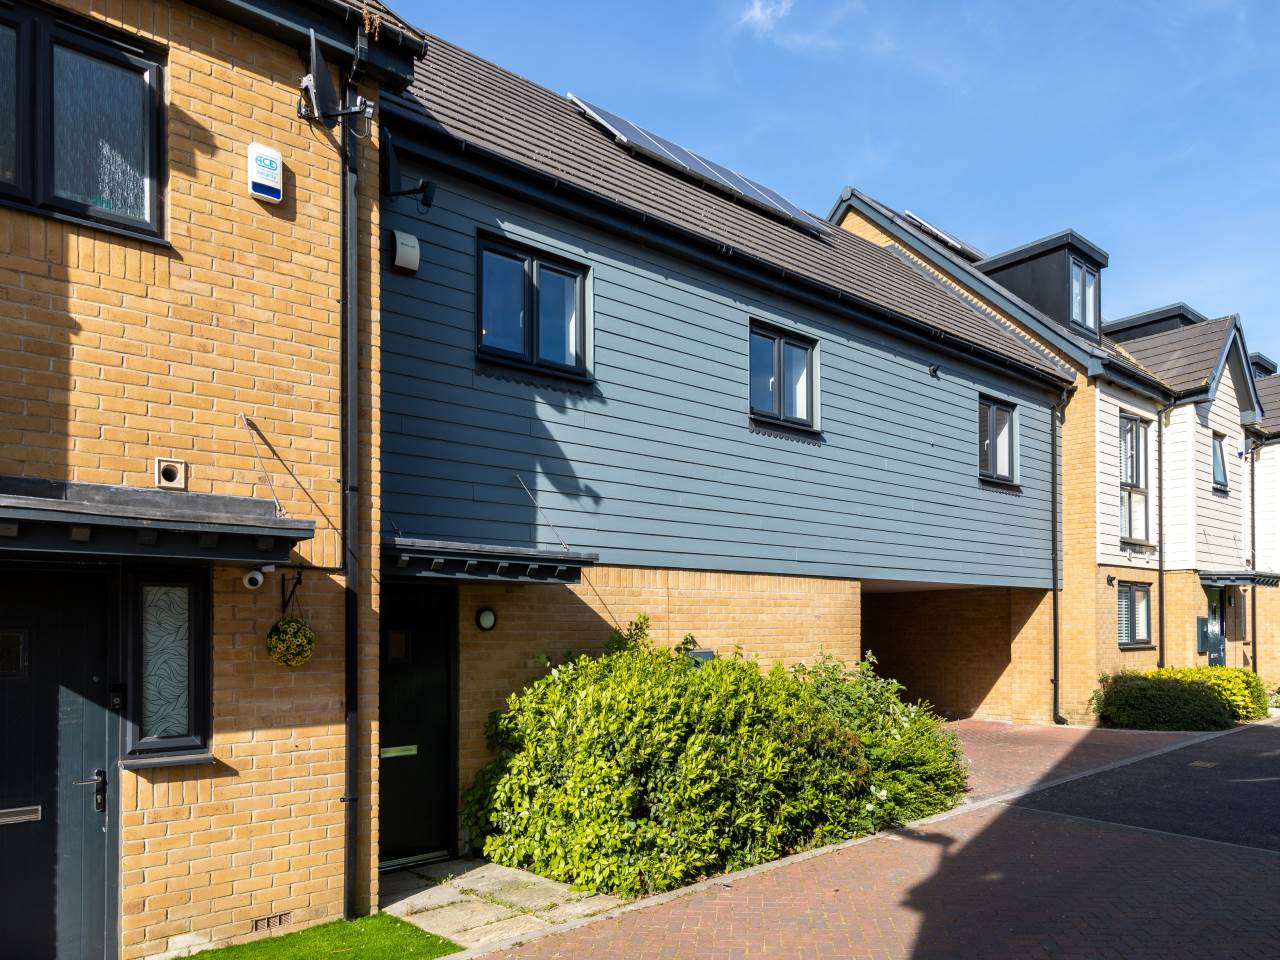 2 bed flat to rent in Woodford Green - Property Image 1